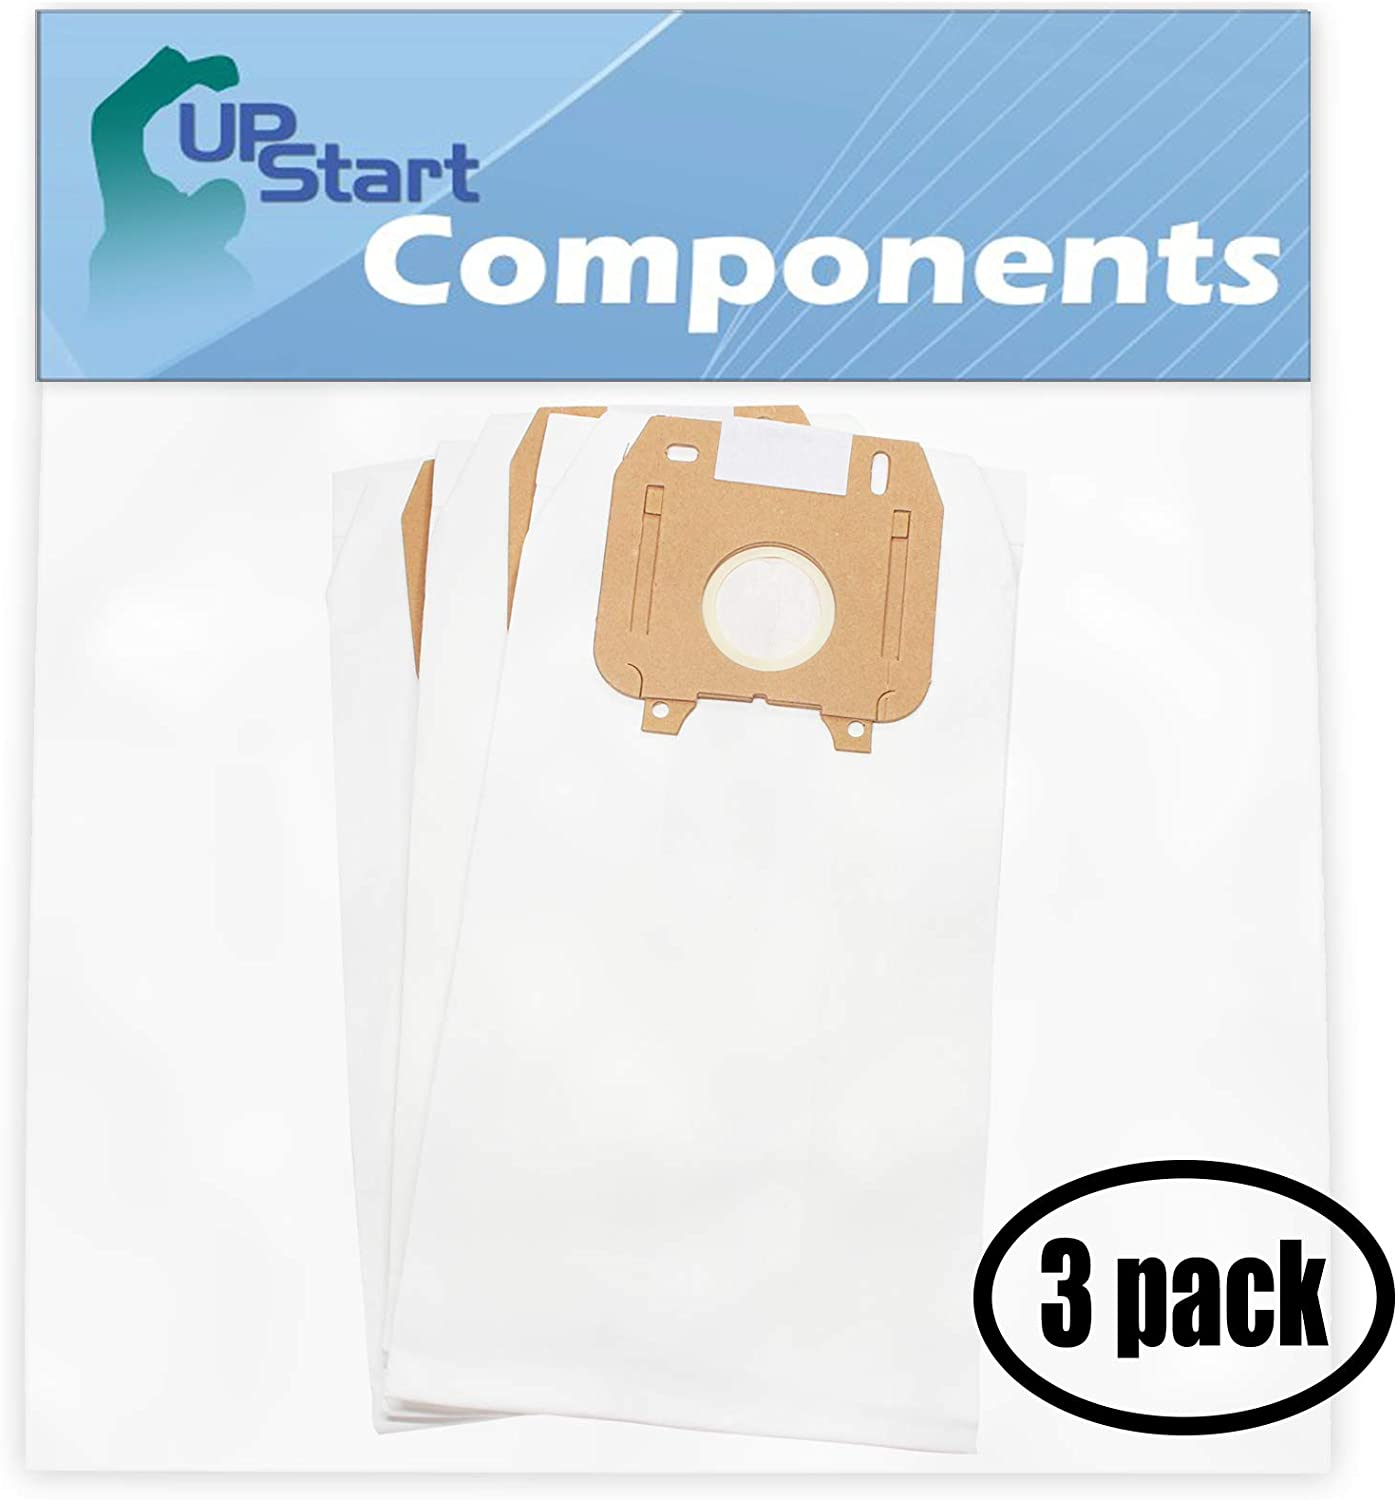 9 Replacement Type LW Vacuum Bags for Oreck Magnesium Vacuum Cleaner - Compatible with Oreck OR-1451, Oreck Magnesium, Oreck Magnesium RS, Oreck LW100, Oreck LW1500RS, Oreck LWPK60H, Oreck Type LW